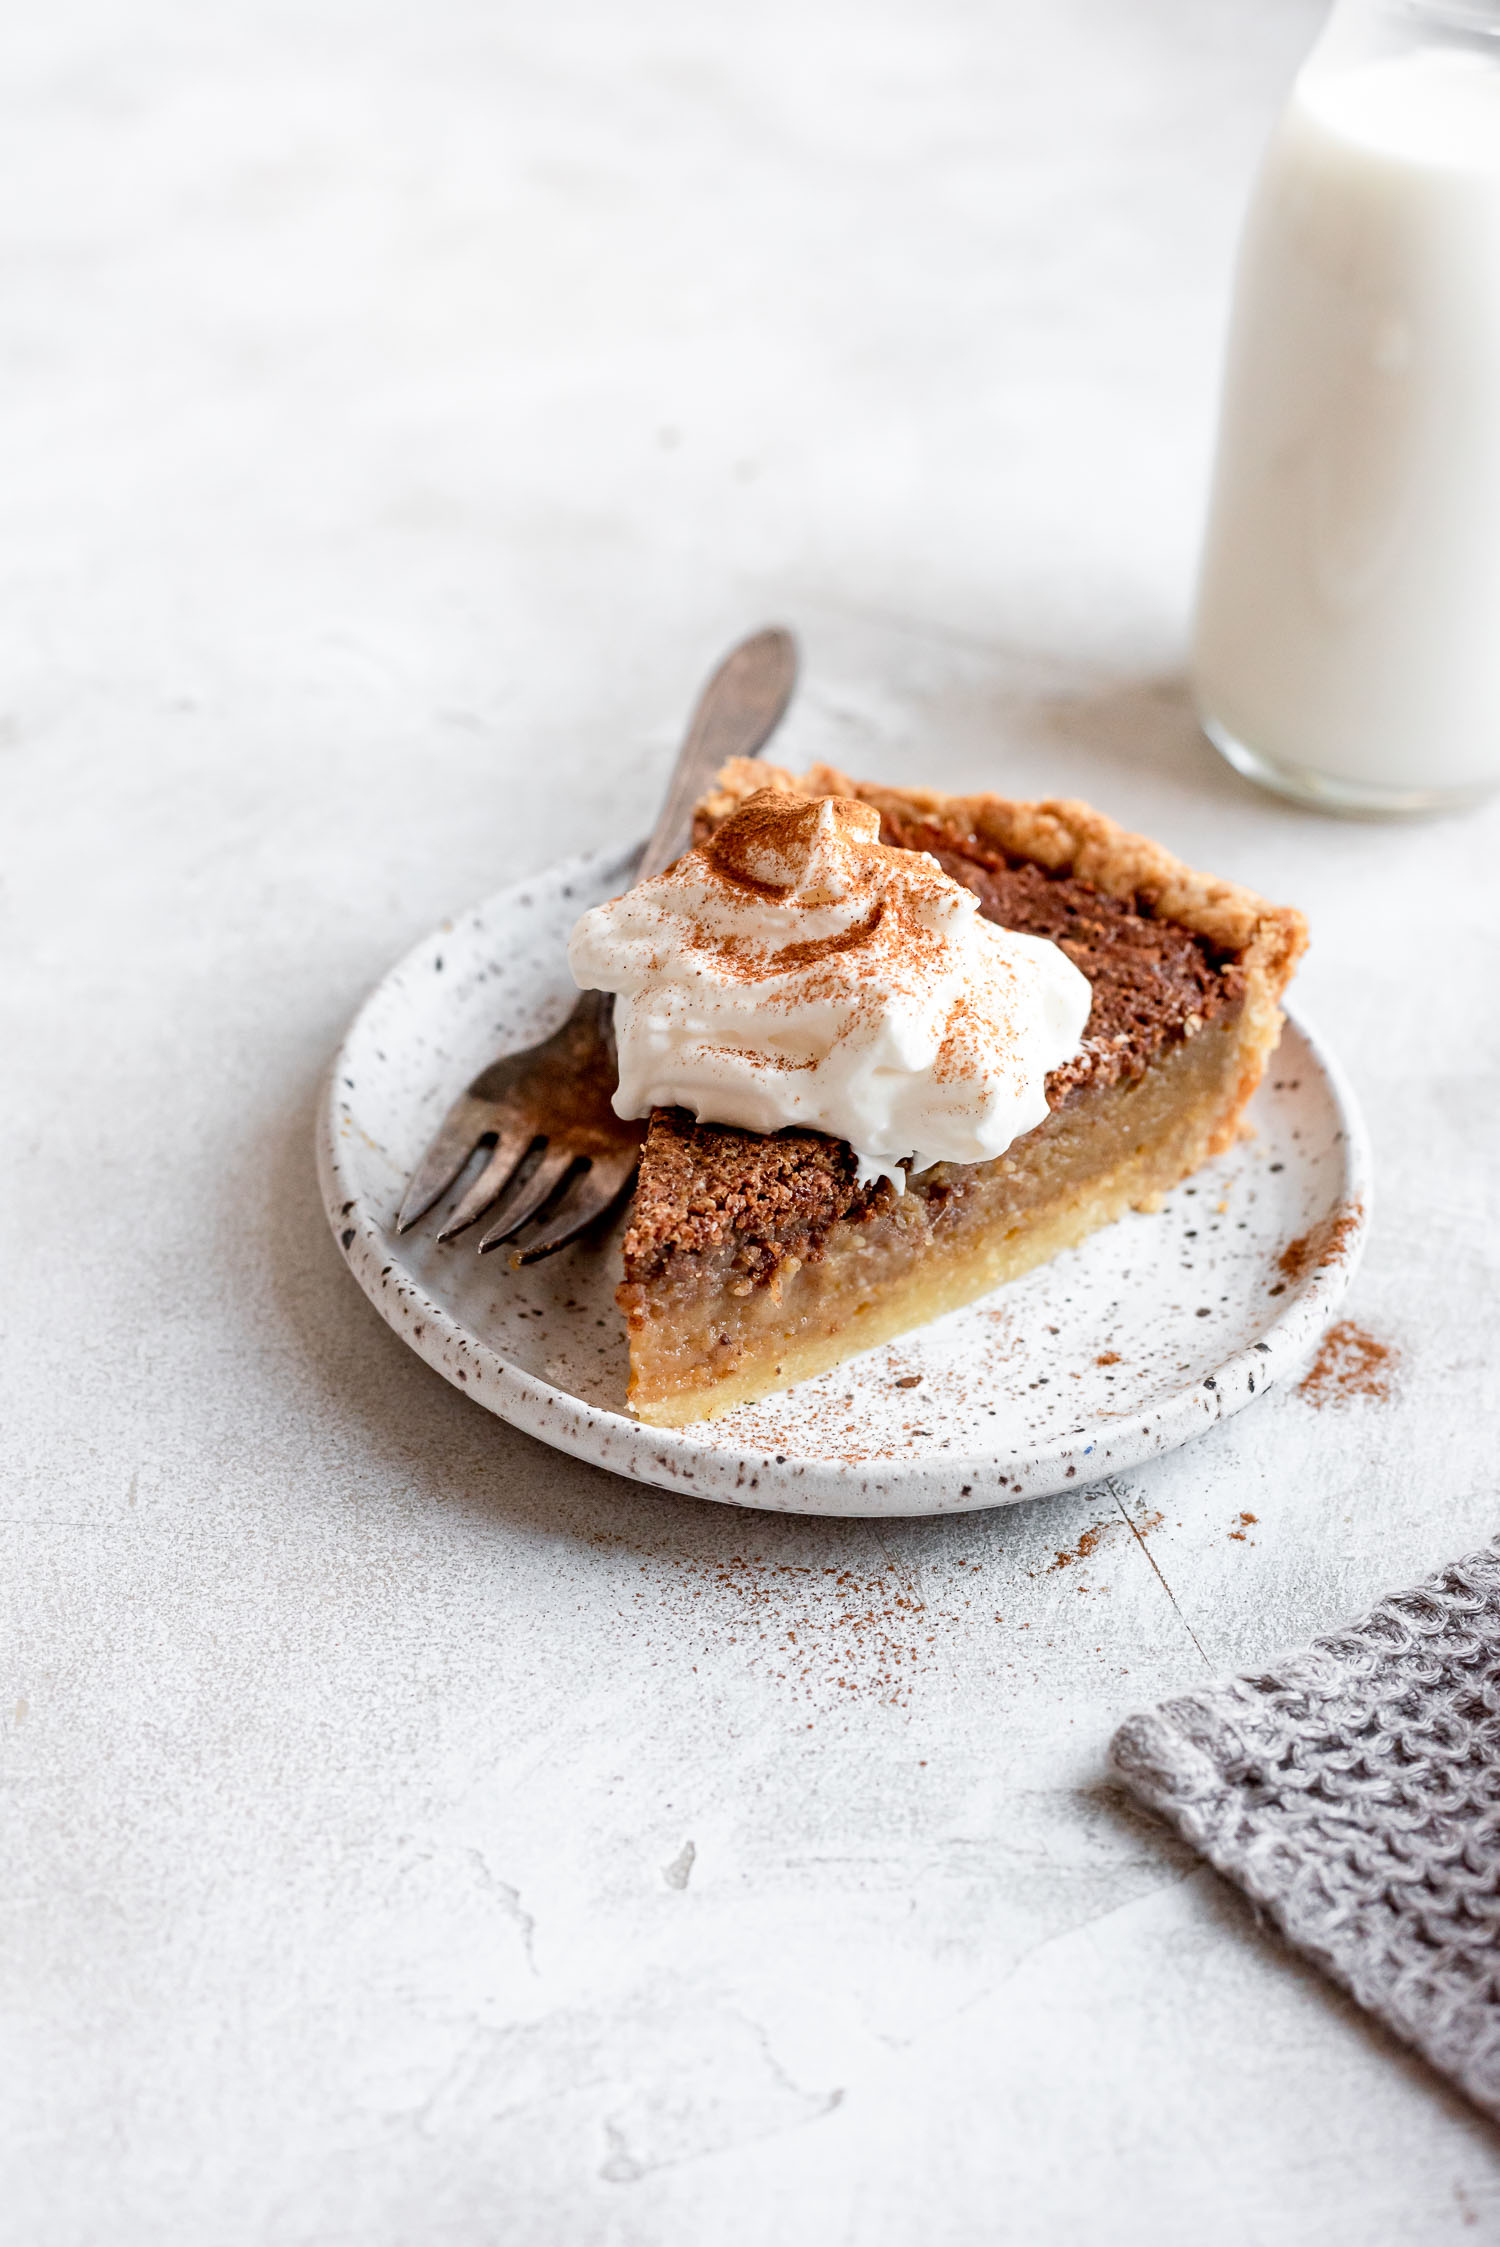 chess pie topped with whippede cream and cinnamon on white plate with fork